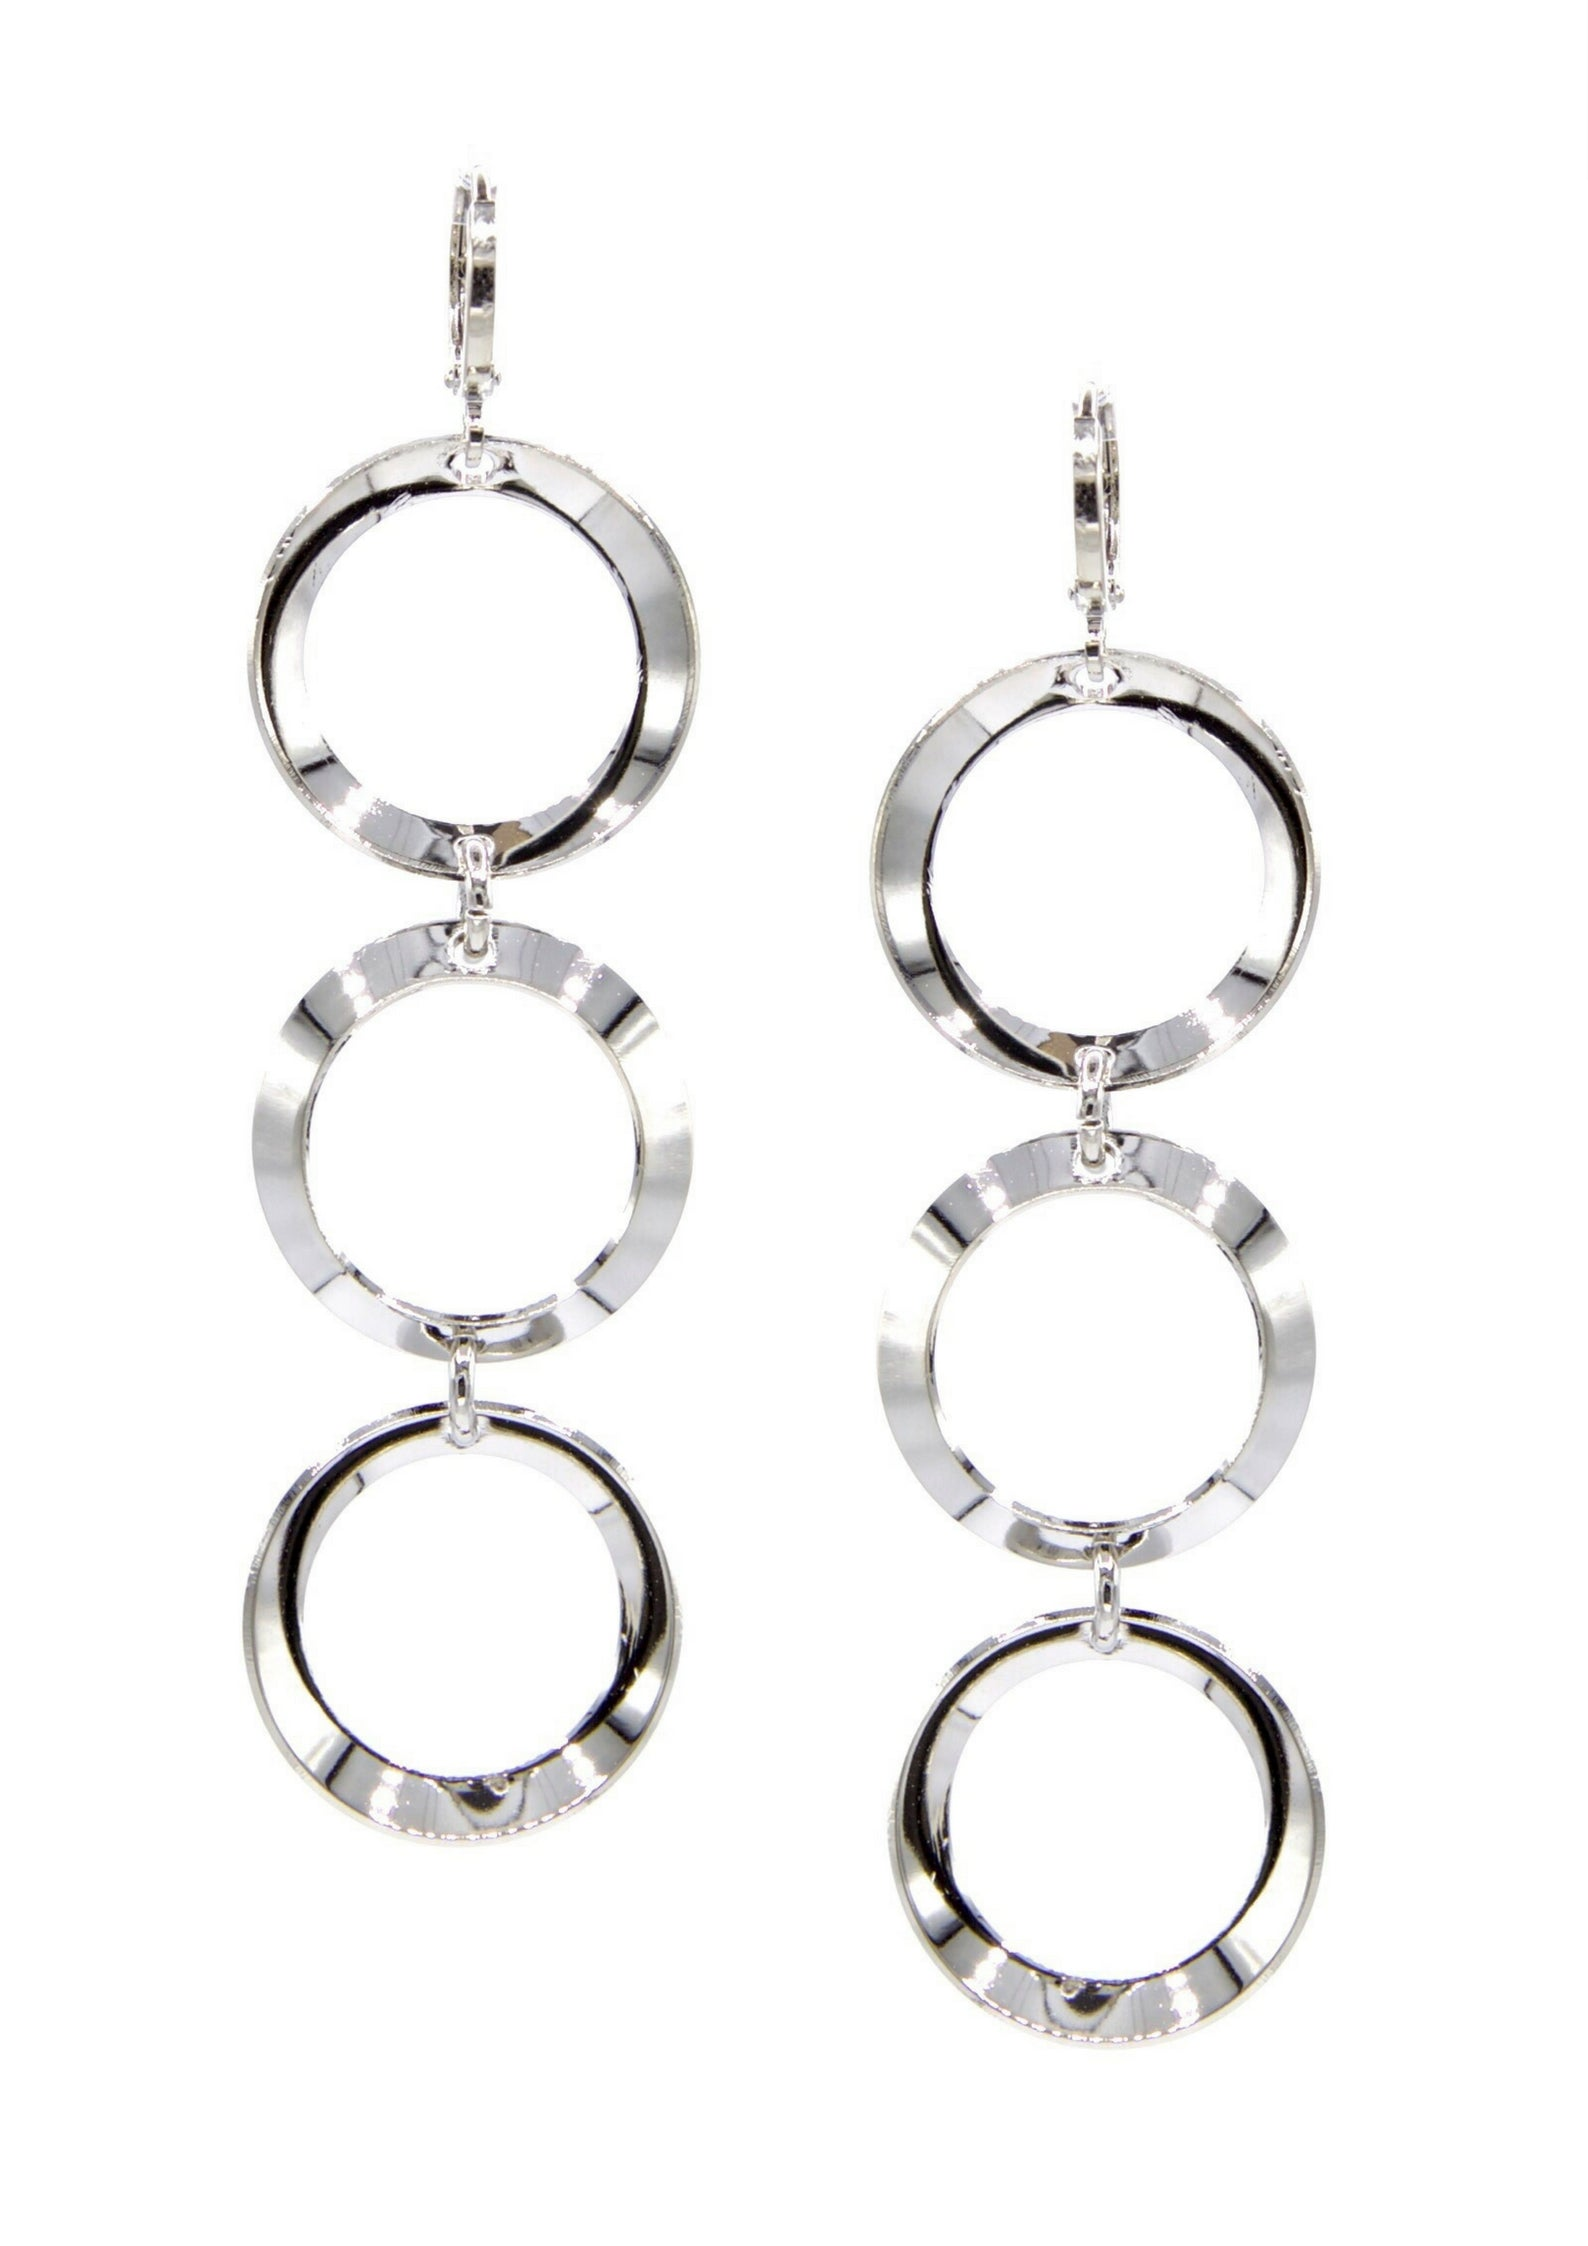 Silver Rimini Hoop Earrings-Earrings-JAREDJAMIN Jewelry Online-JARED JAMIN